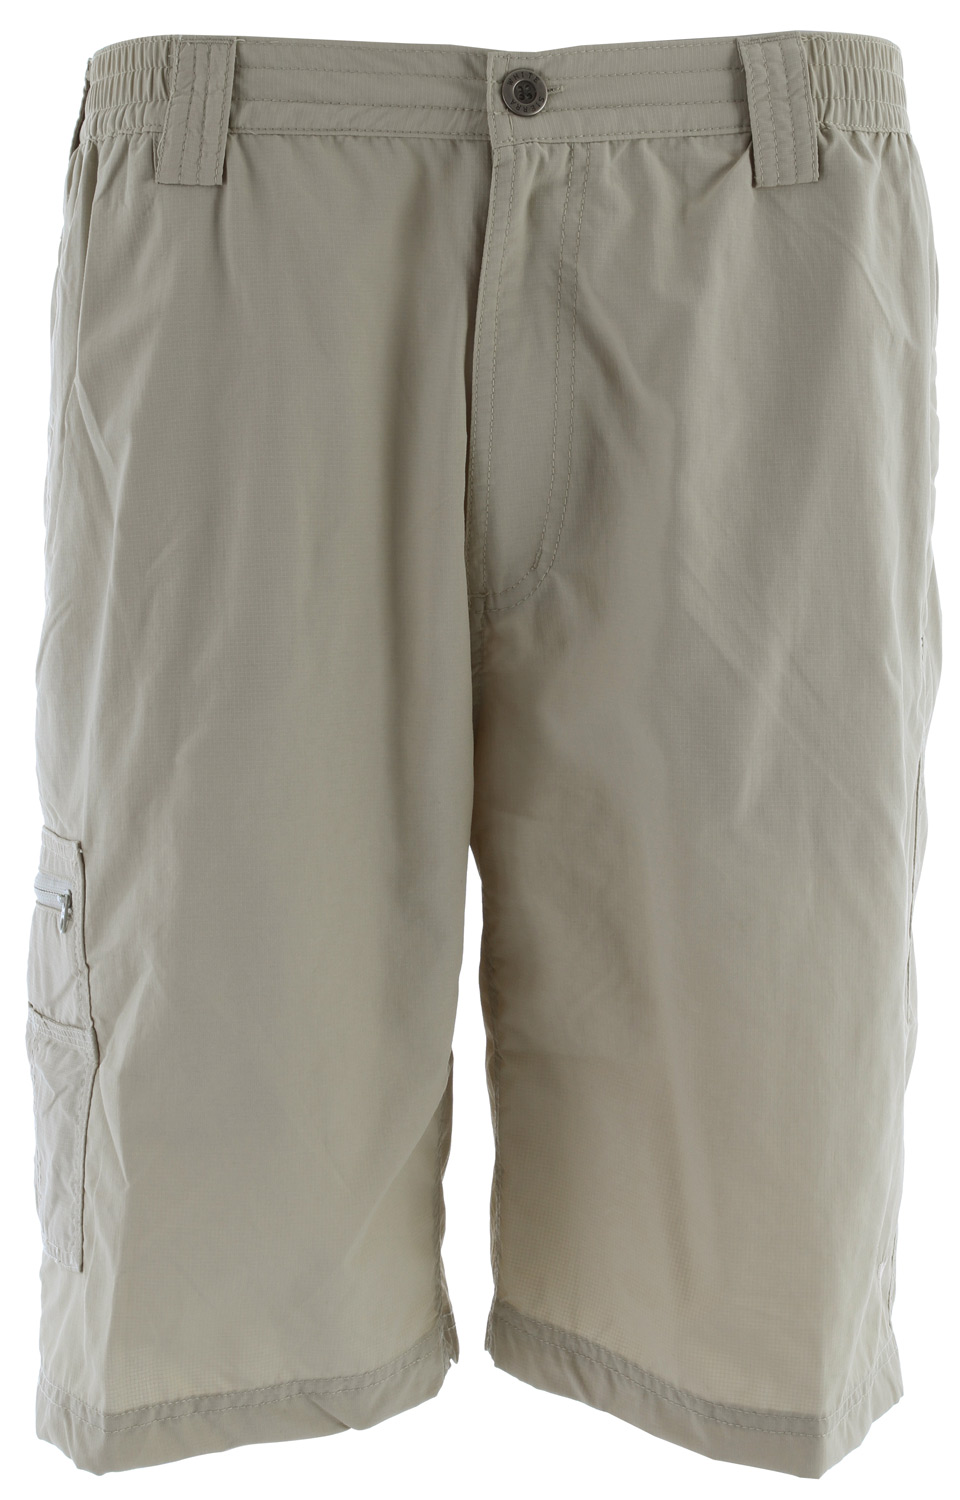 "Camp and Hike Go on the ultimate backpacking adventure while wearing these shorts. They pack easily into your bag, dry quickly after a wade in the water, and have multiple pockets to store snacks, gear, and other necessities.Key Features of the White Sierra Grizzly Trail Shorts: 100% nylon rip stop woven UPF 30 Quick dry Comfort fit side elastic Zip secure thigh pocket Gusseted crotch Inseam: 10"" - $24.95"